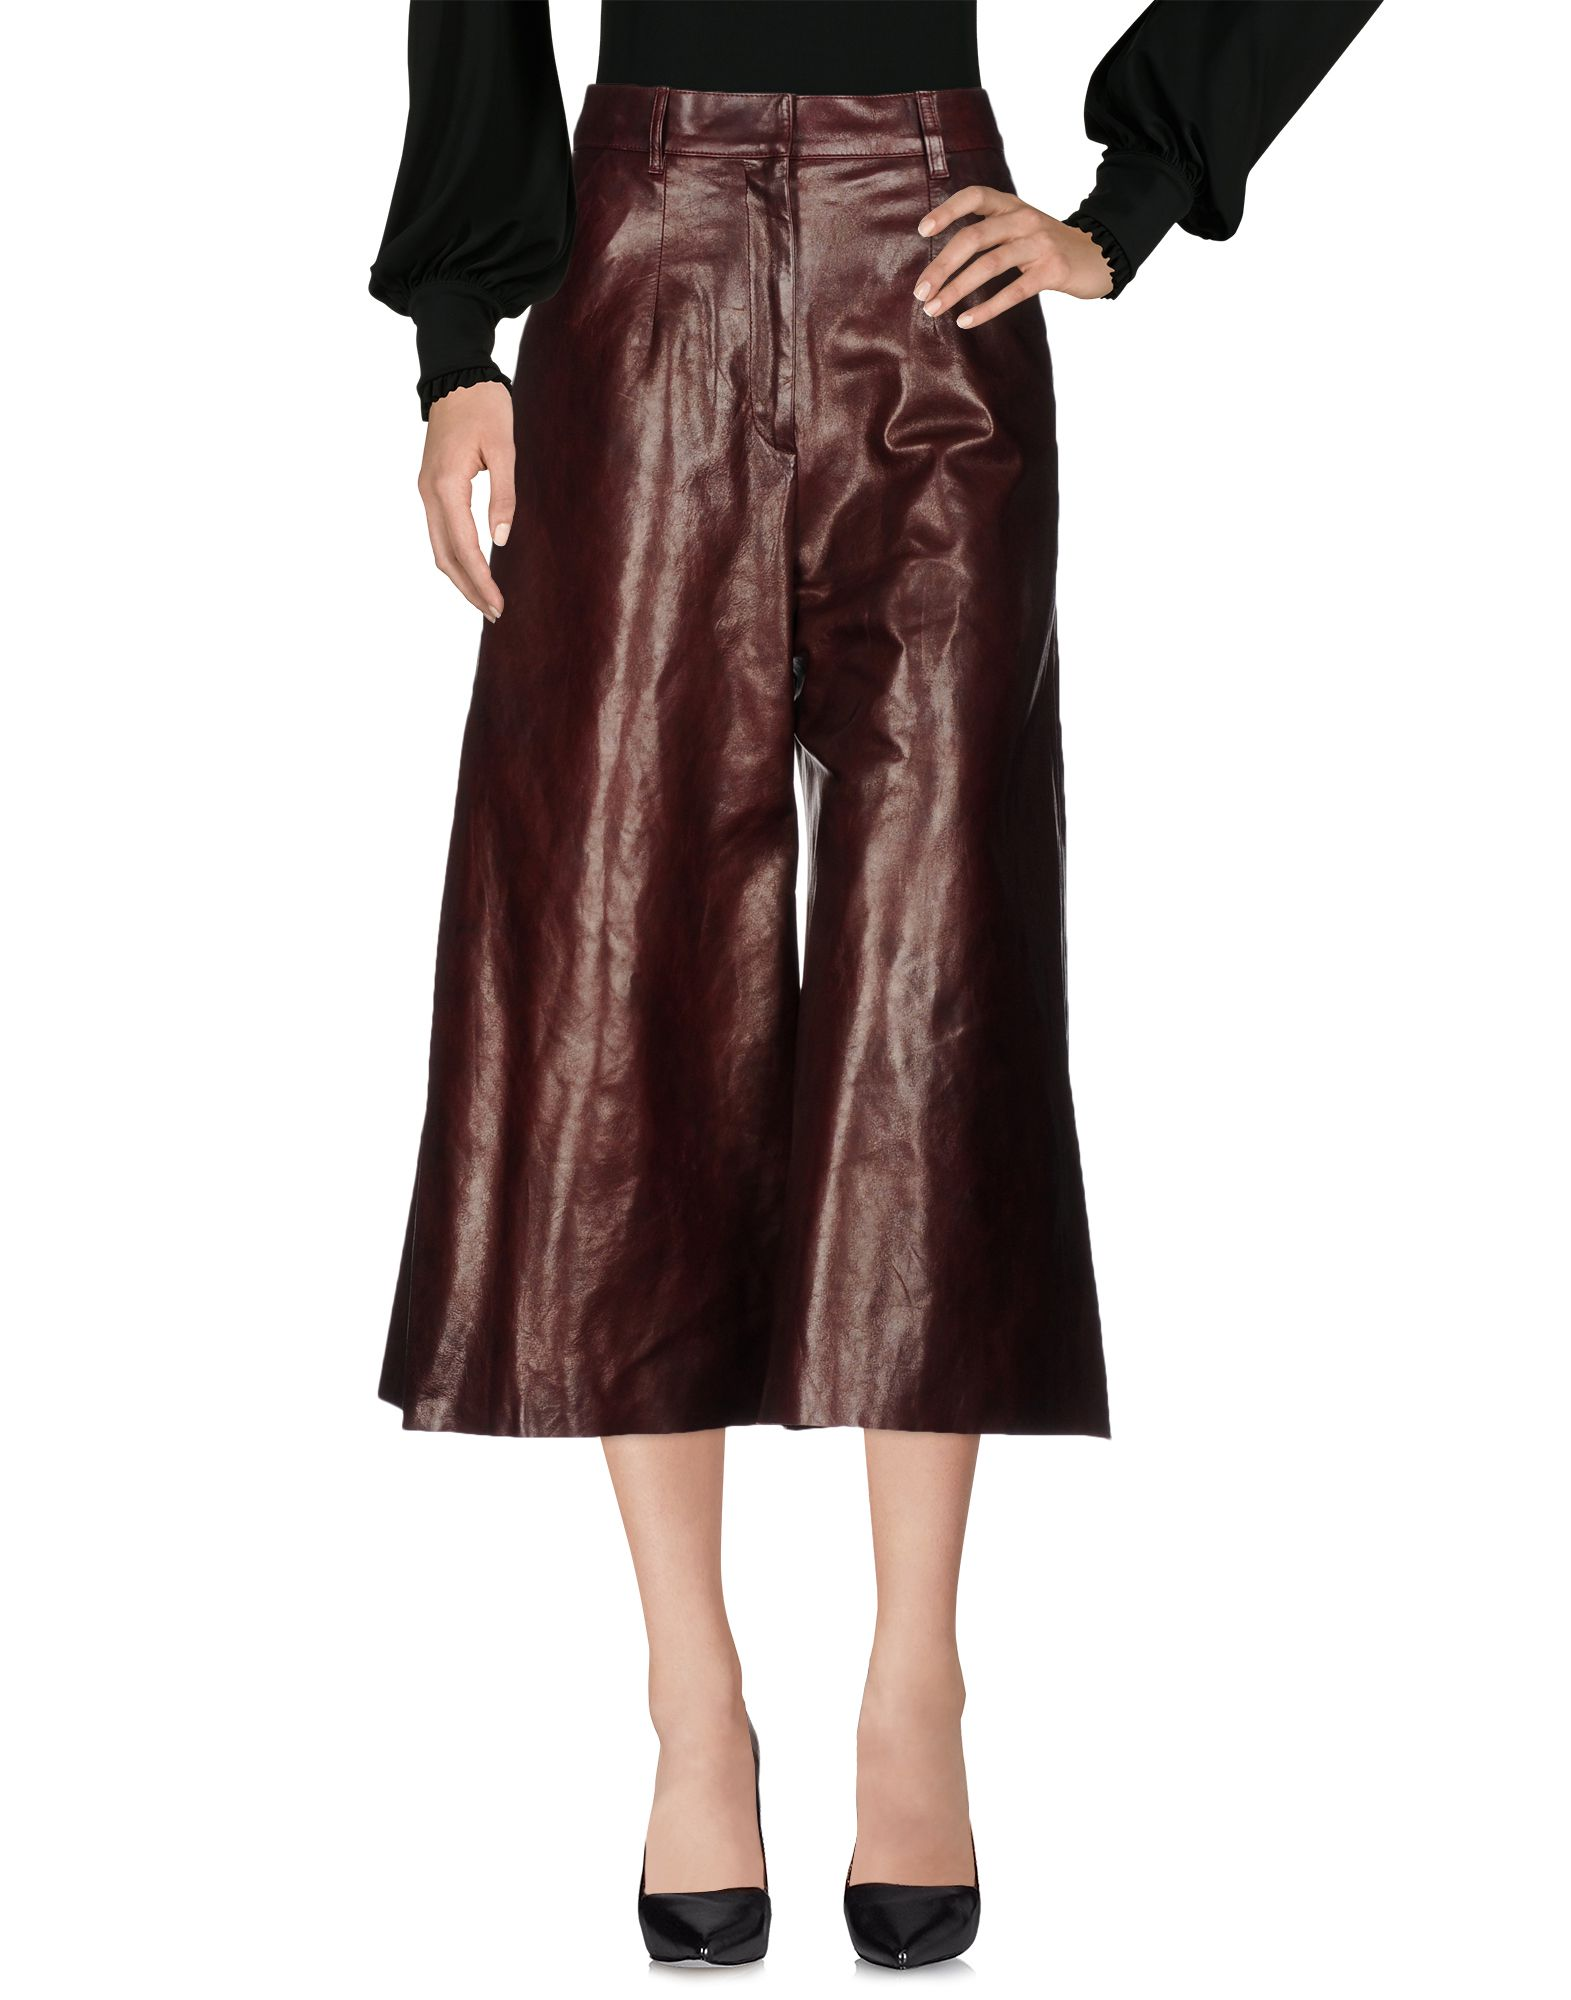 BY. BONNIE YOUNG Casual Pants in Maroon